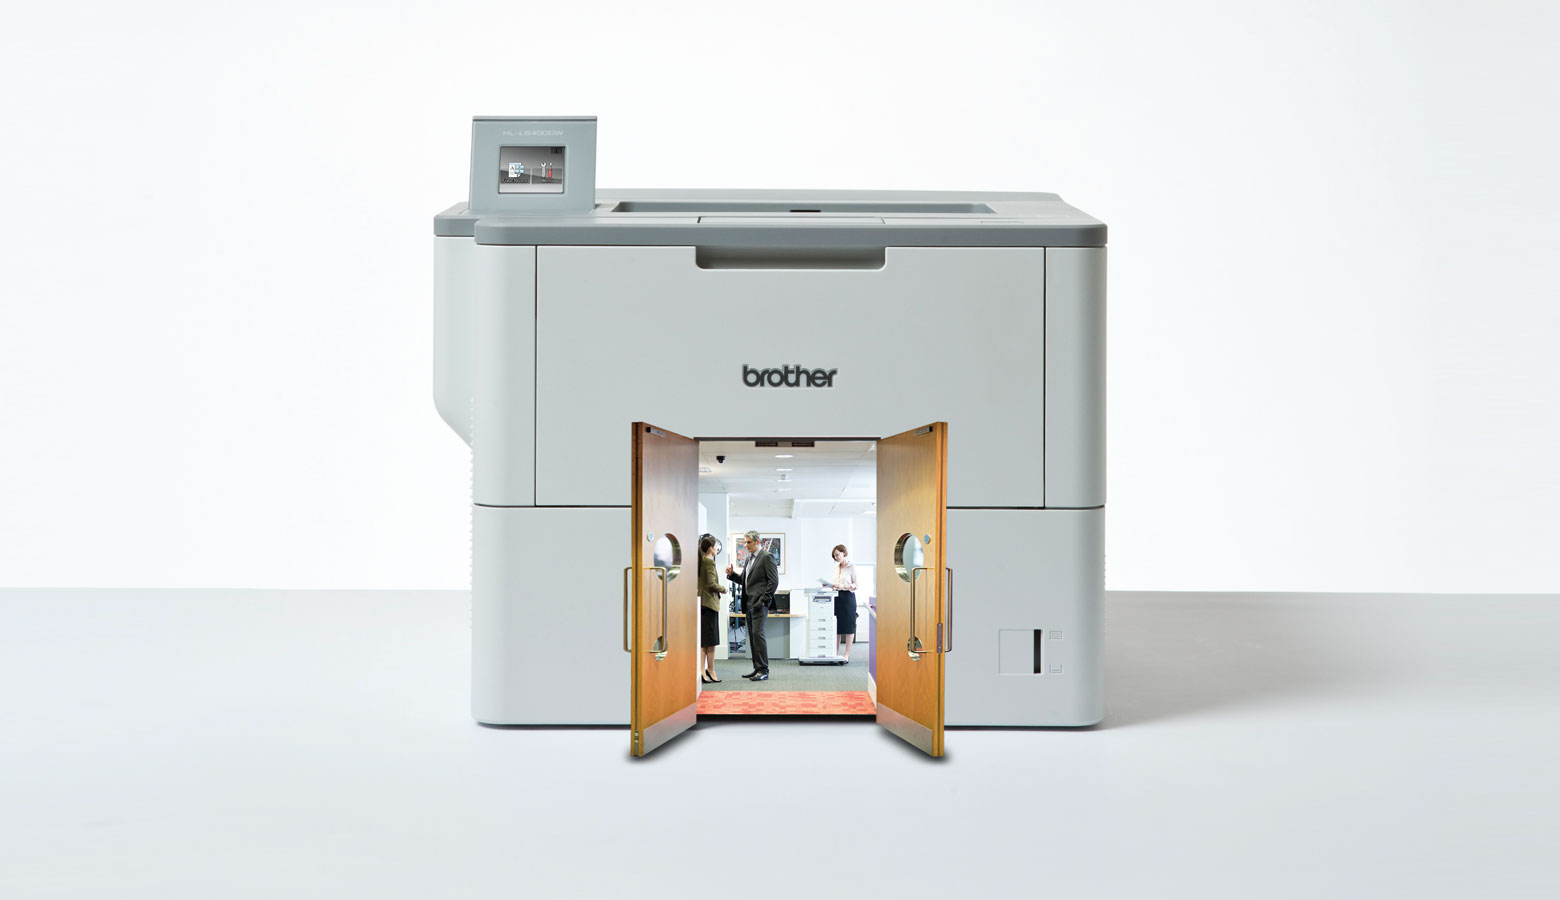 Brother L6000 printer